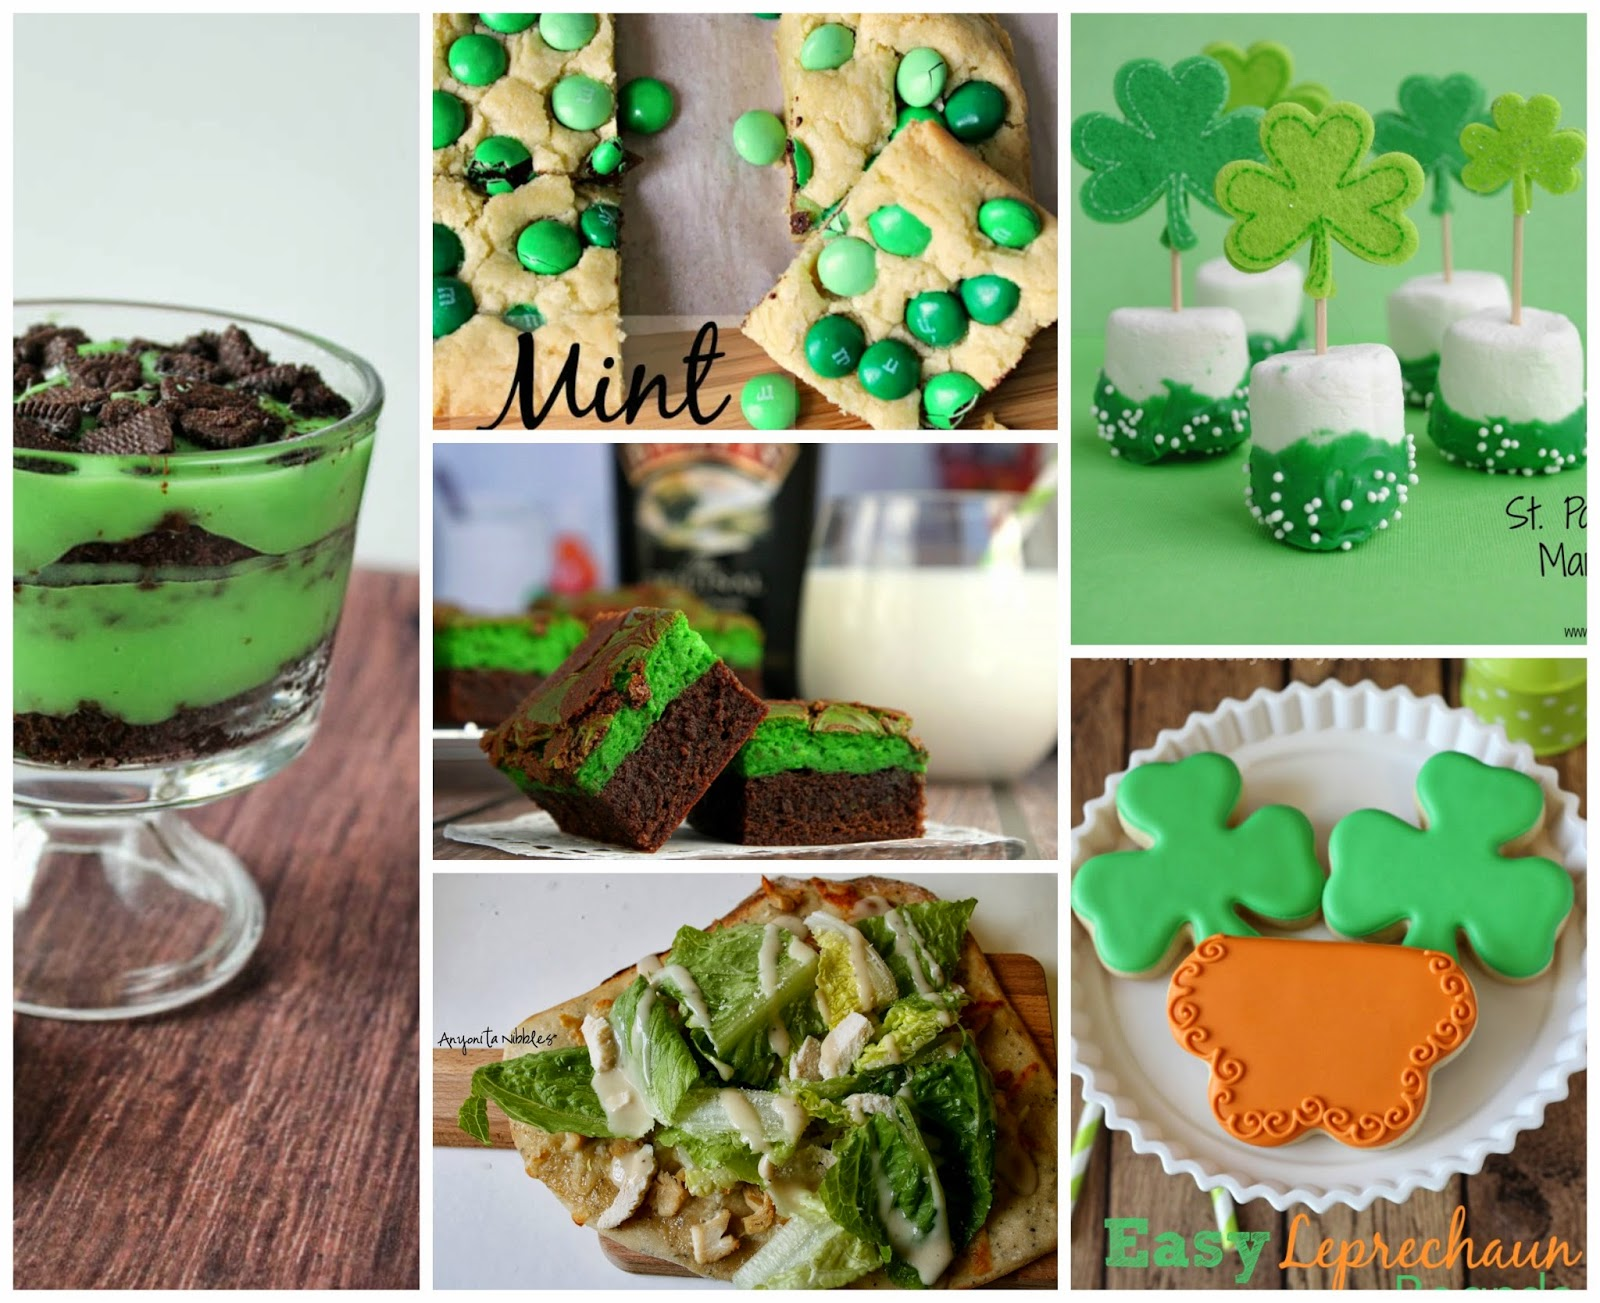 http://www.anyonita-nibbles.co.uk/2014/03/55-sweet-savory-st-patricks-day-recipes.html